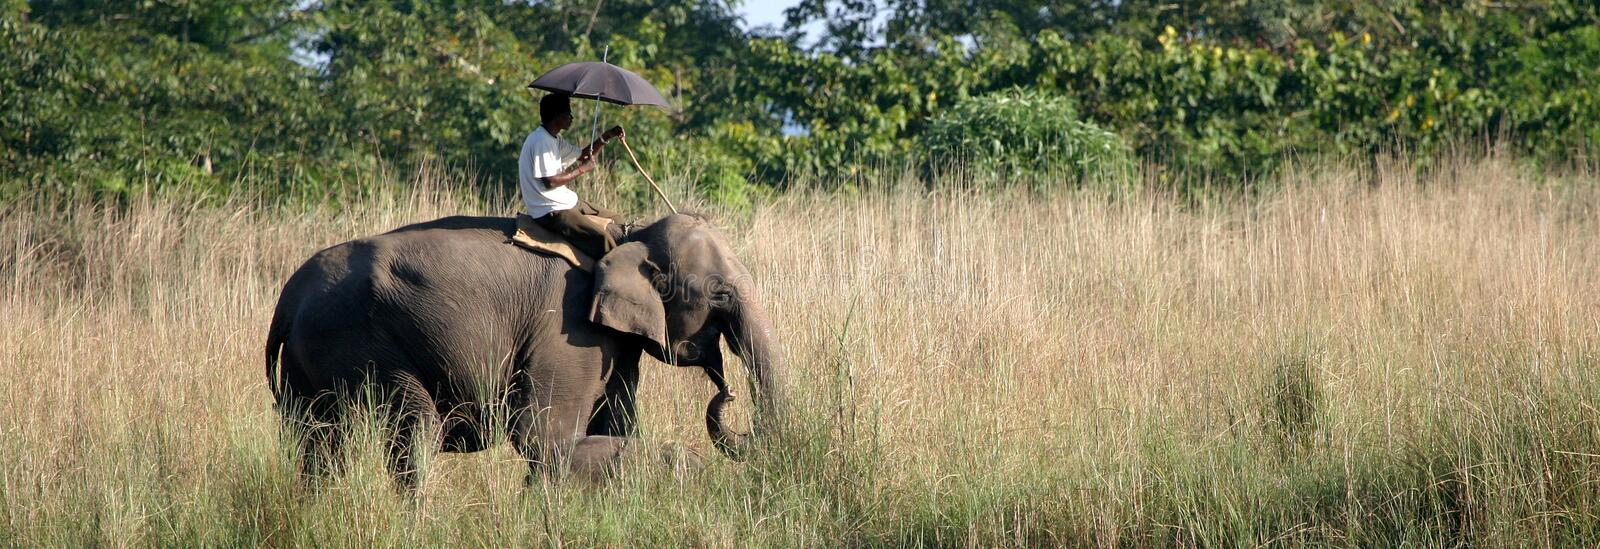 Elephant with Mahout royalty free stock photos